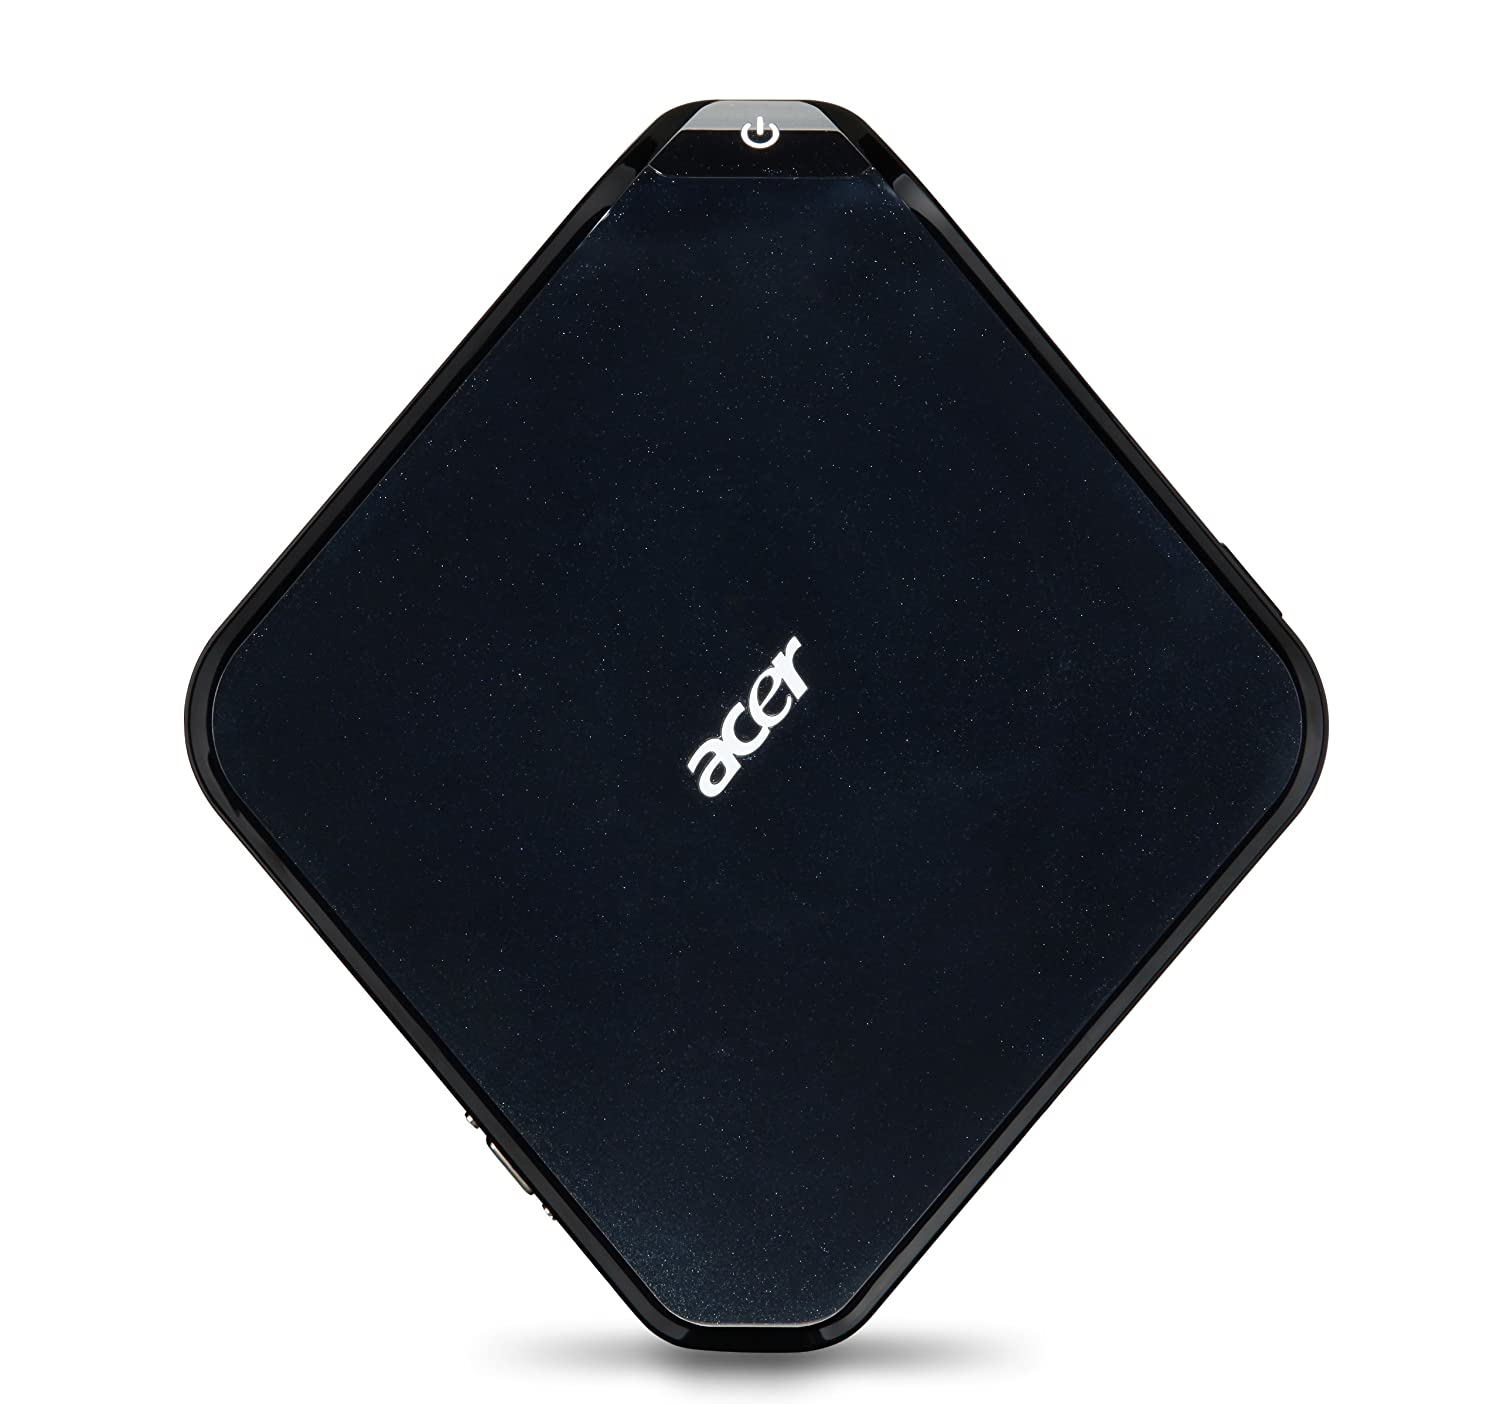 DOWNLOAD DRIVERS: ACER ASPIRE R3600 COPROCESSOR